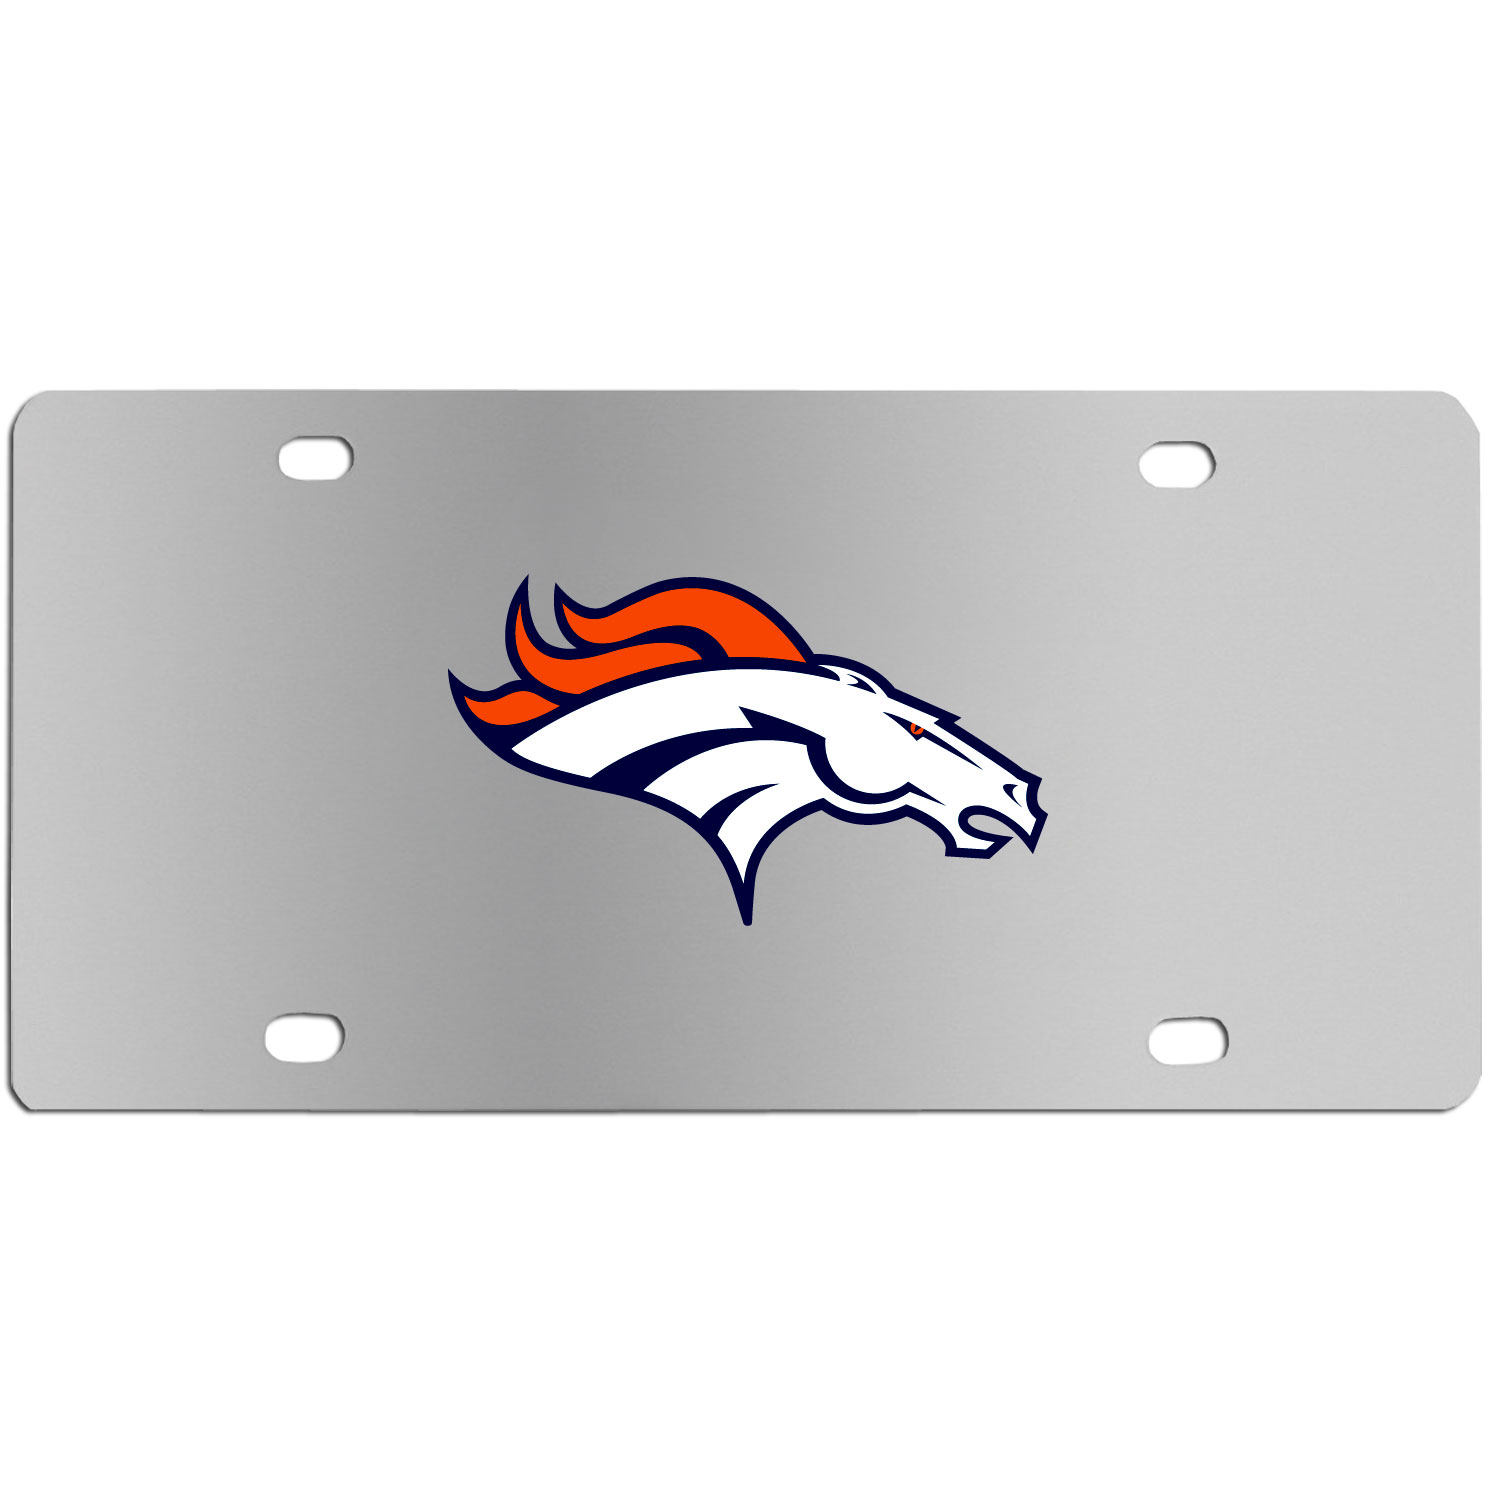 Denver Broncos Steel License Plate Wall Plaque - This high-quality stainless steel license plate features a detailed team logo on a the polished surface. The attractive plate is perfect for wall mounting in your home or office to become the perfect die-hard Denver Broncos fan decor.